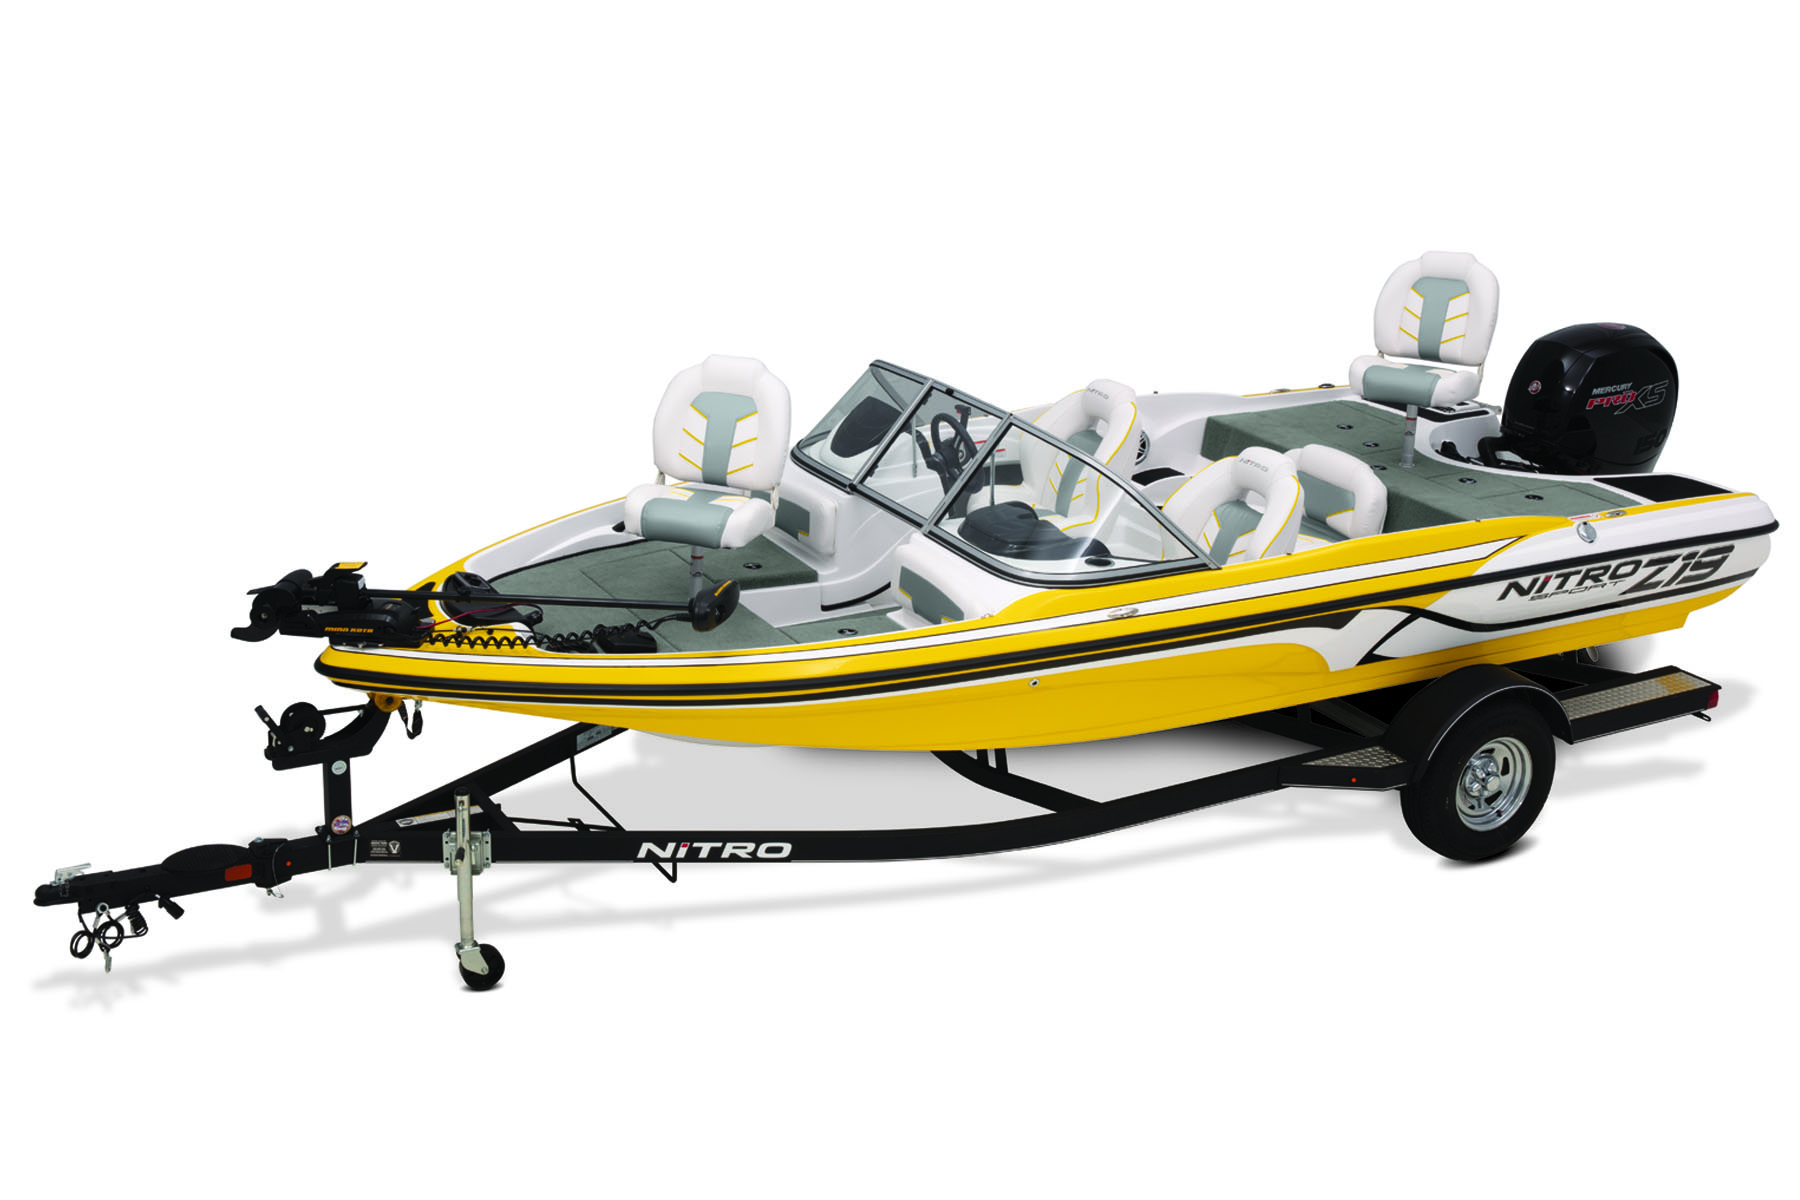 Best Fish And Ski Boats >> 2019 Nitro Z19 Sport Fish And Ski Boat